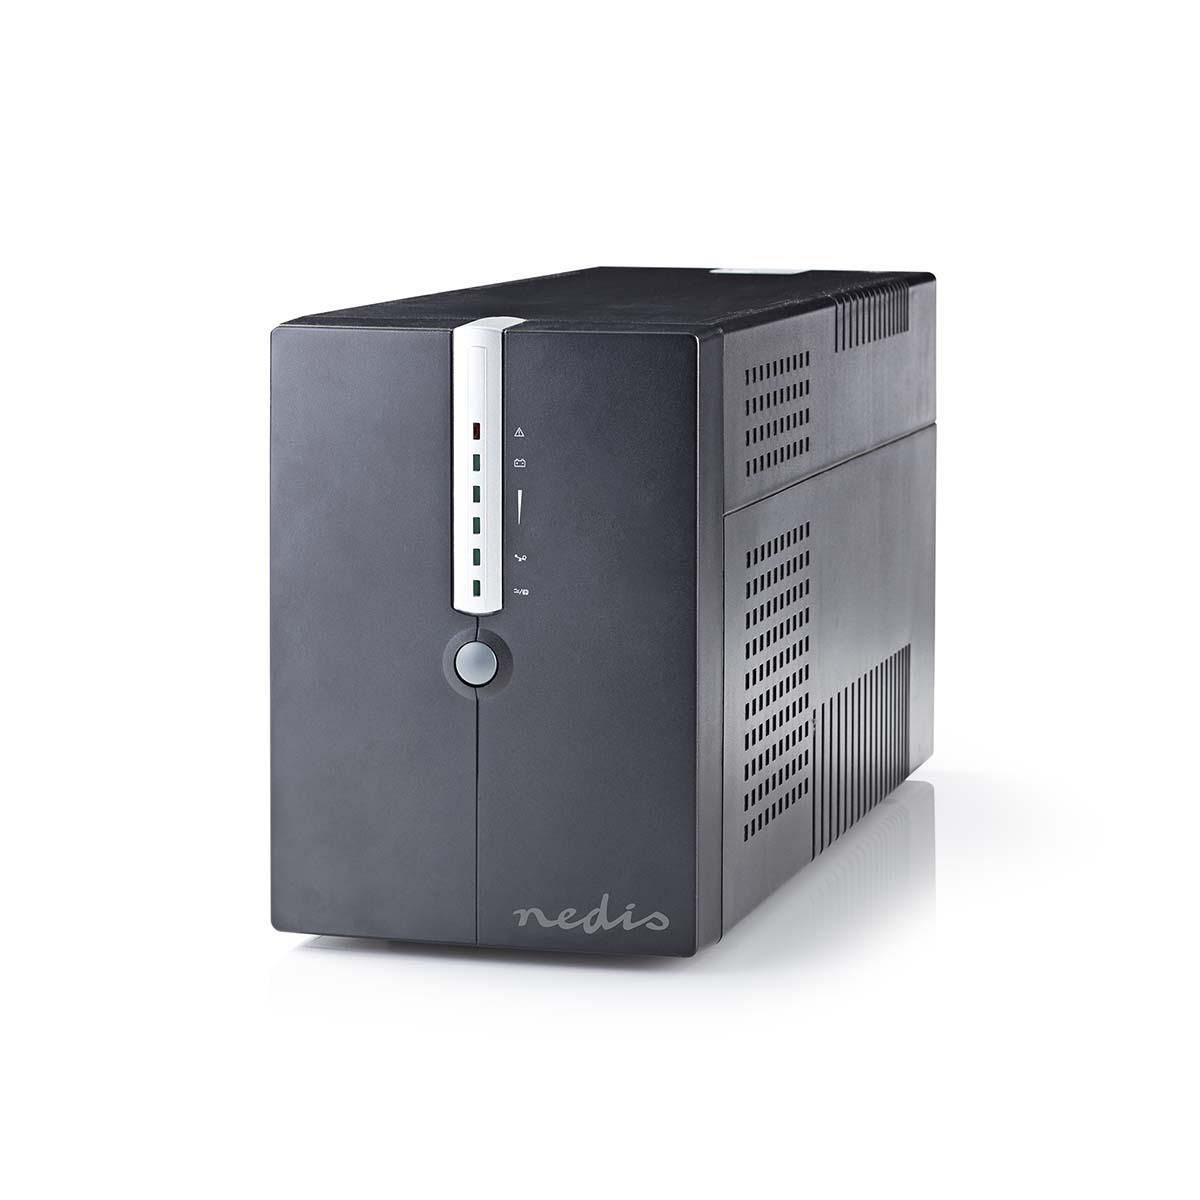 Protect your valuable computer and files against power outages and power surges with this powerful 2000 VA UPS. The built-in battery gives you 10 minutes to save files and to shut down the computer properly during a power failure. With the monitoring soft